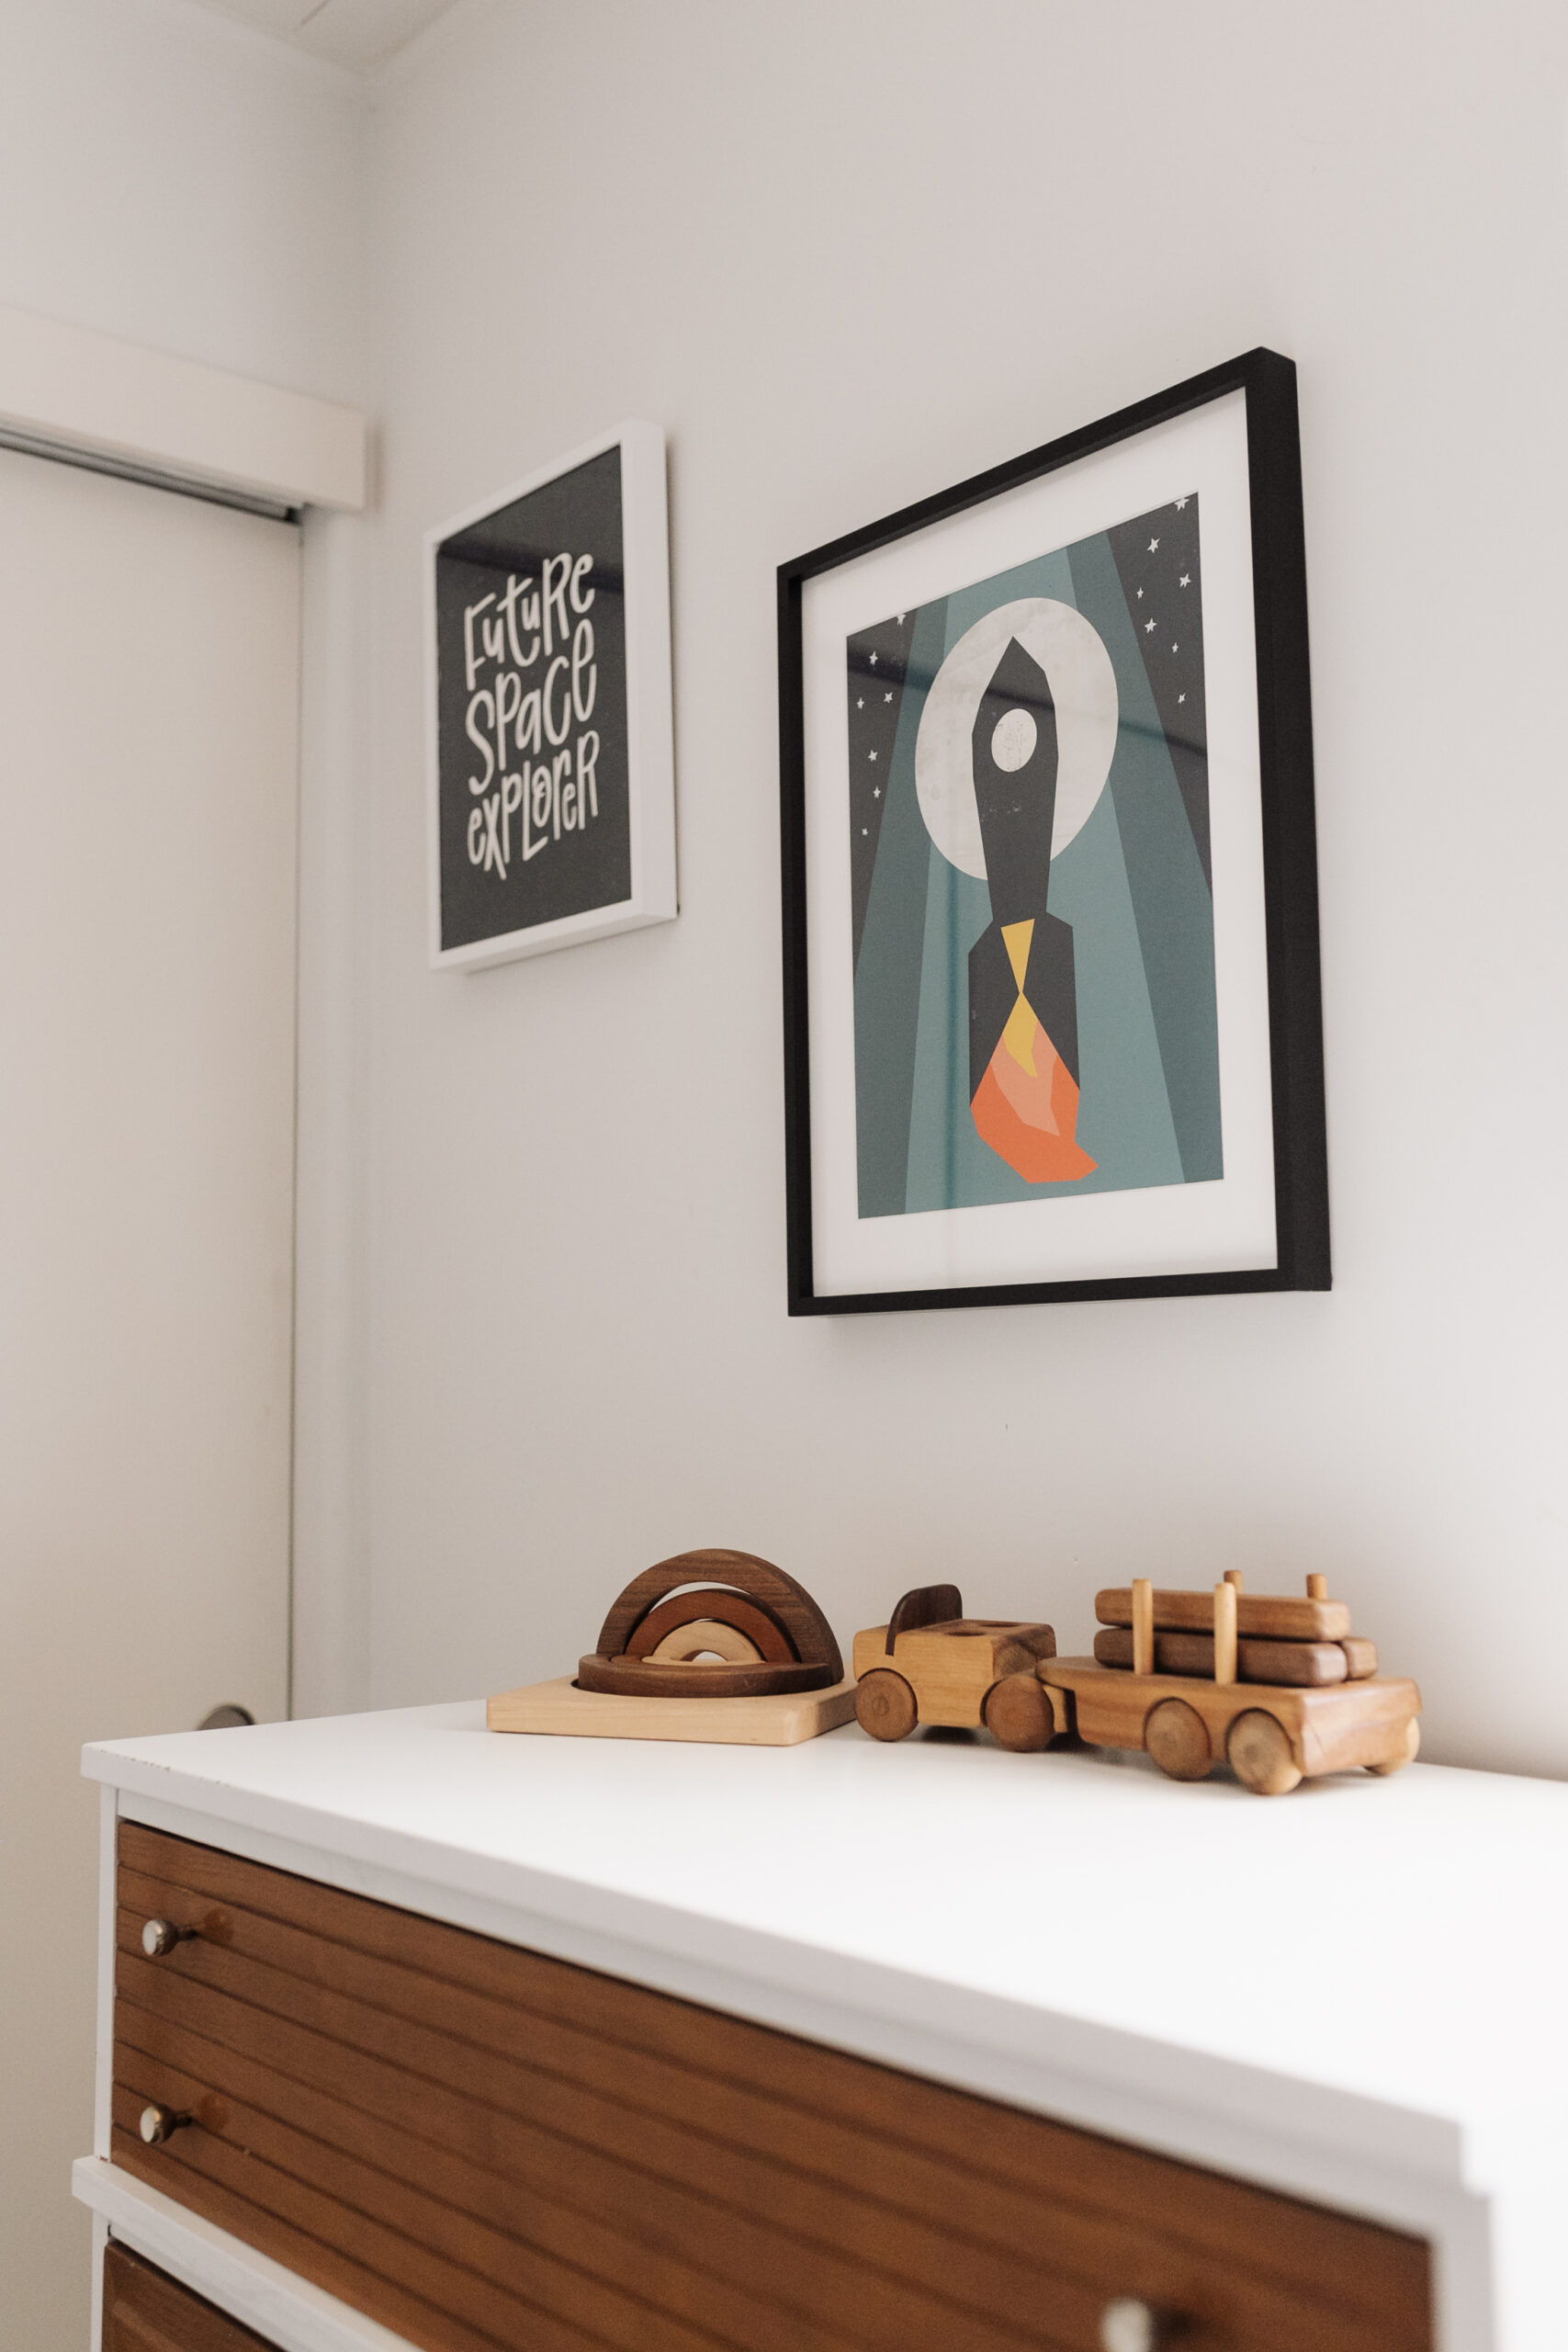 details of the art in this space inspired room #artwork #minted #customprints #spaceart